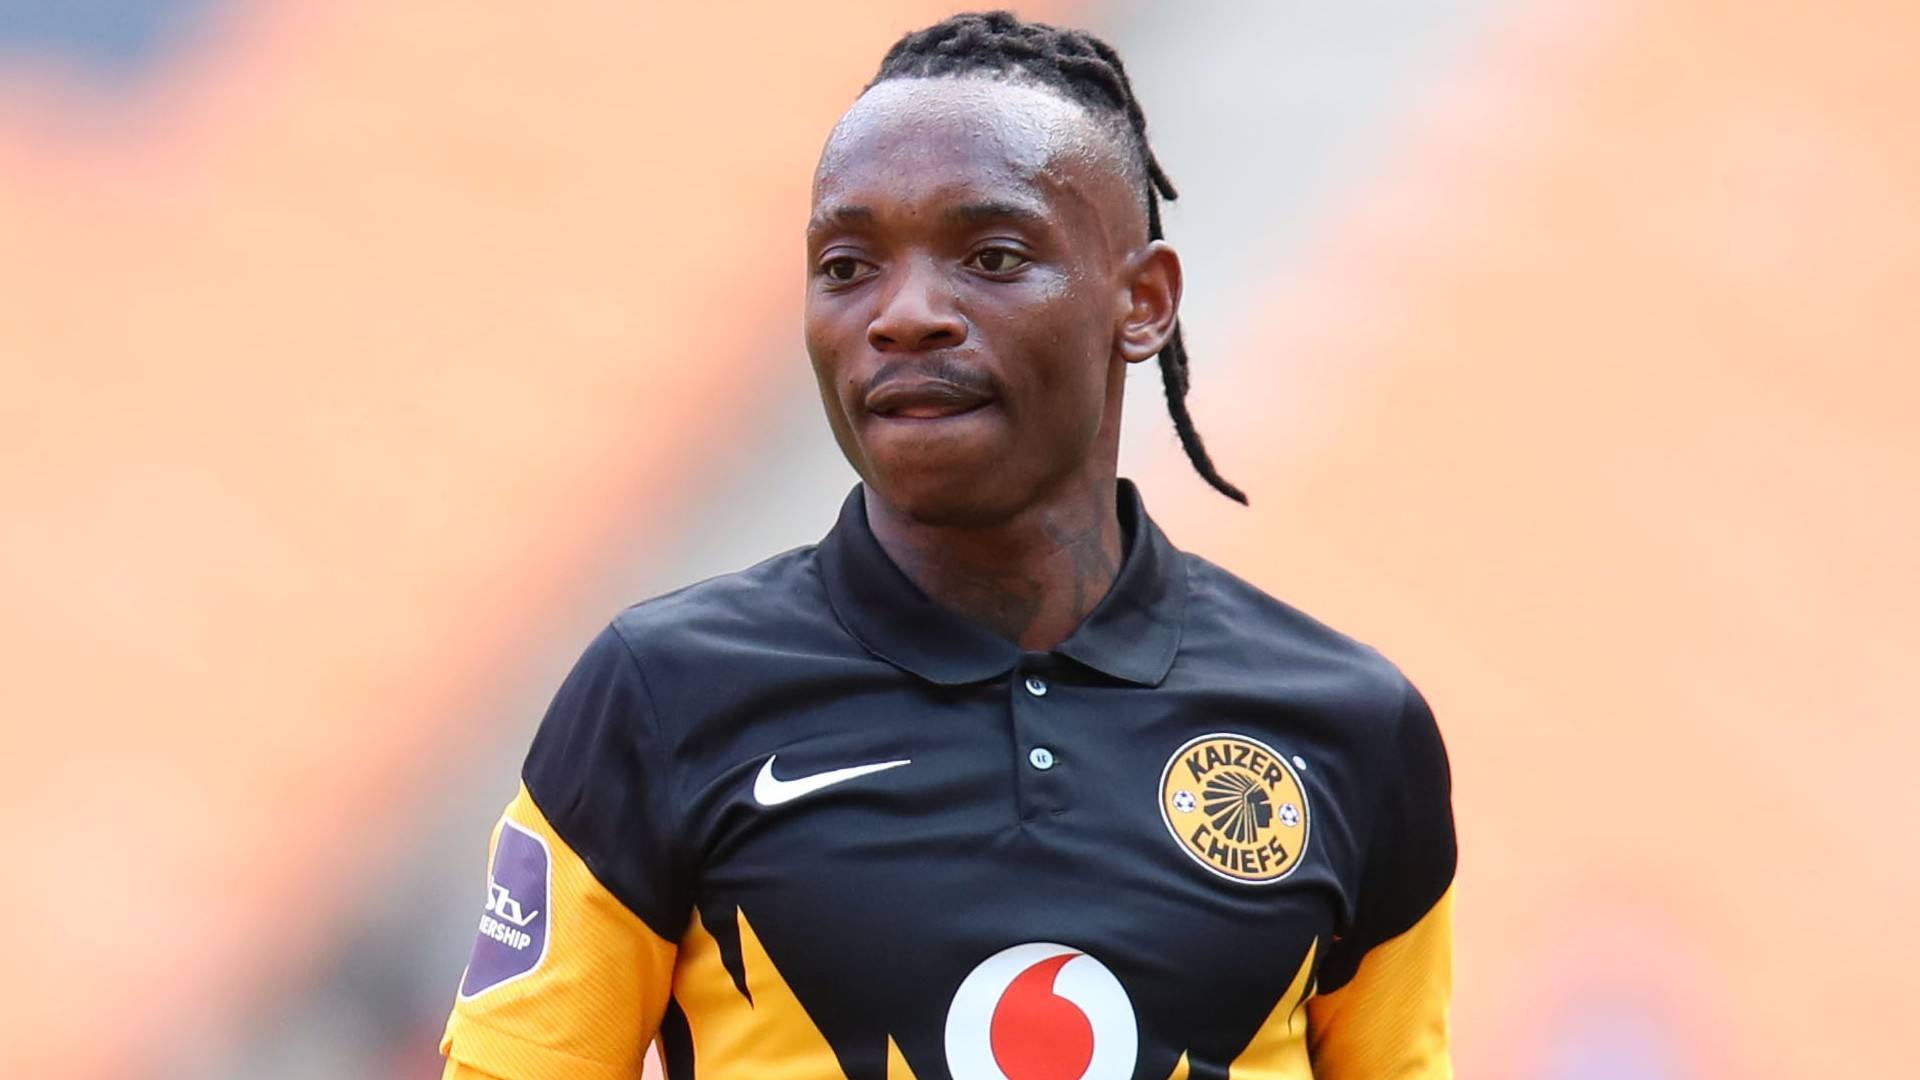 Kaizer Chiefs star Billiat: We don't win the Caf Champions League in the first game